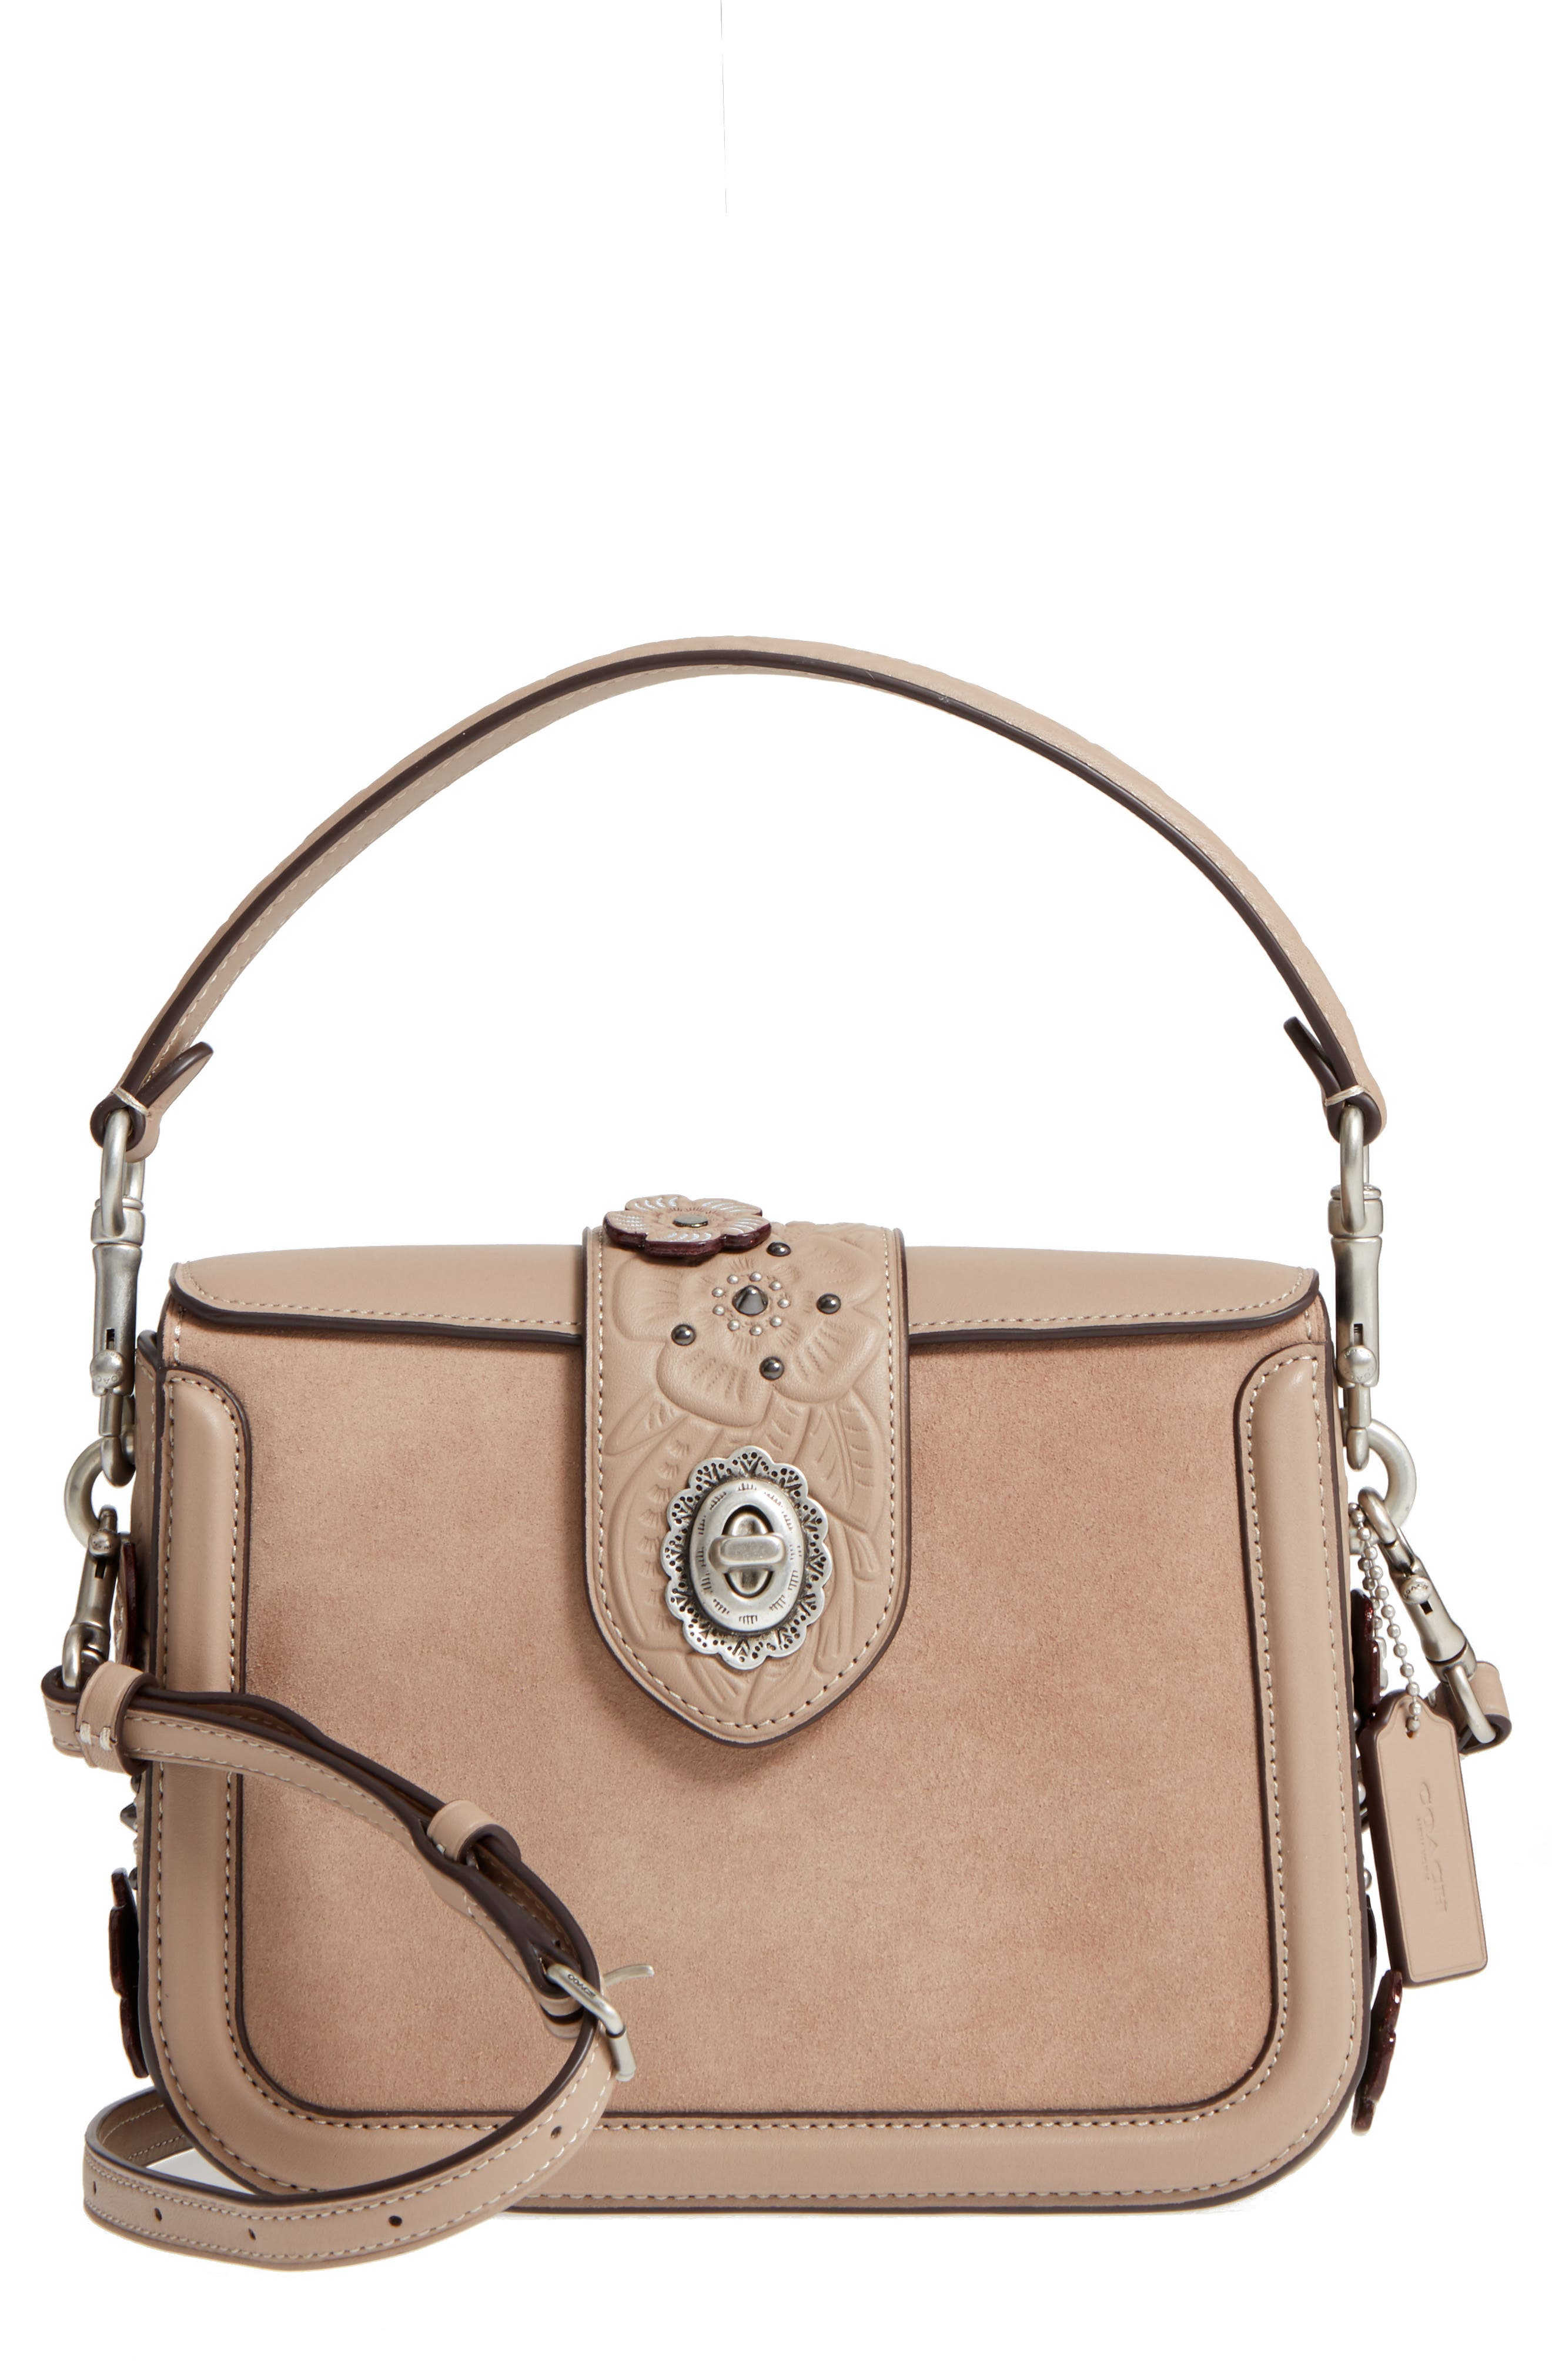 Page Tea Rose Tooled Calfskin Leather Top Handle Satchel,                             Main thumbnail 1, color,                             020